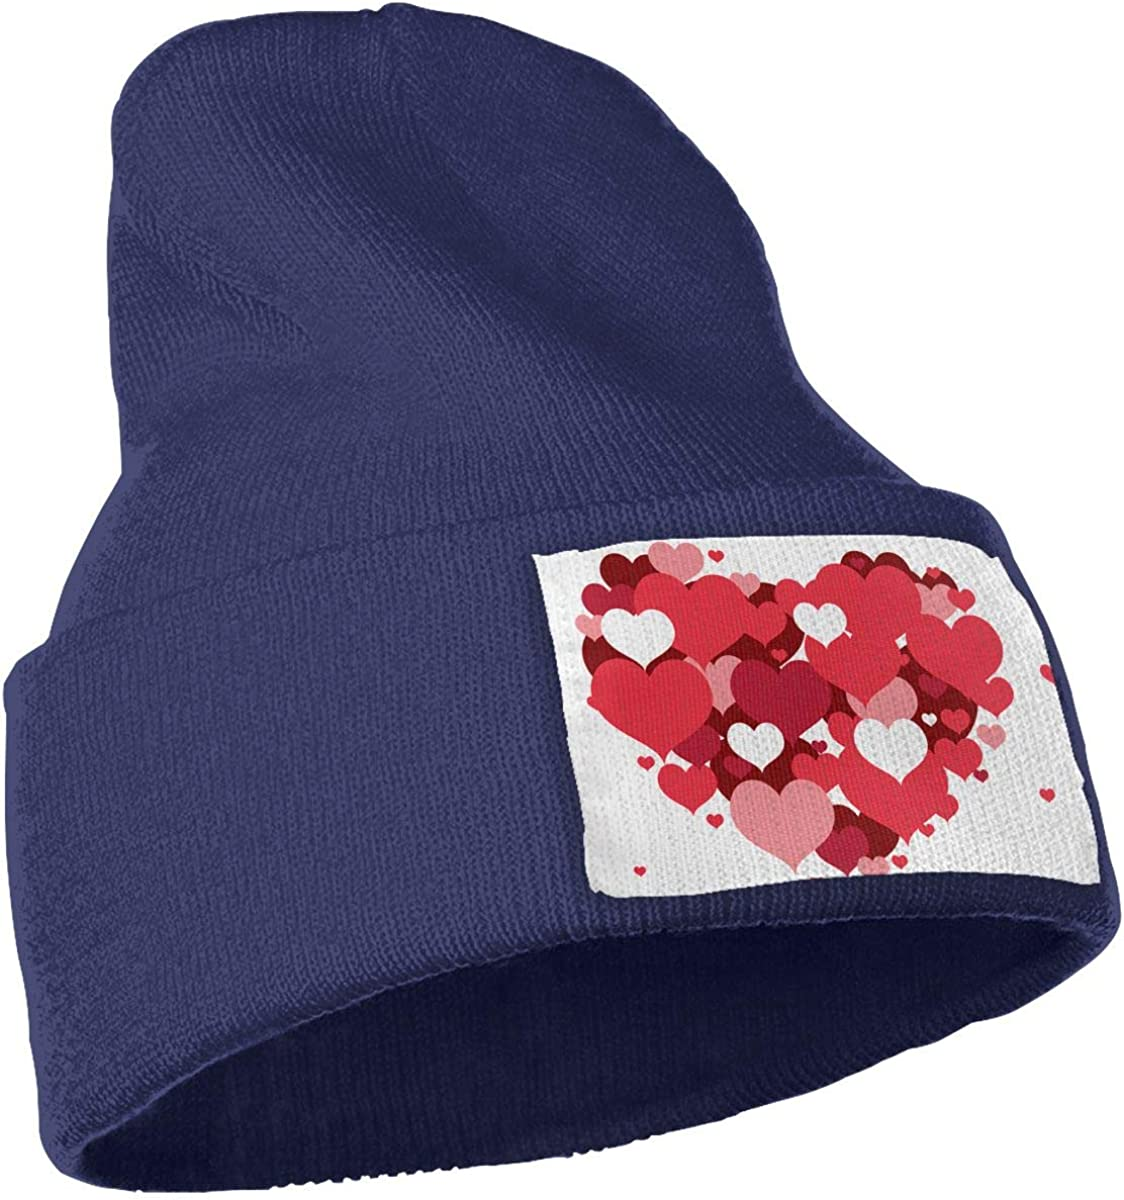 Red Love Hearts Unisex Fashion Knitted Hat Luxury Hip-Hop Cap